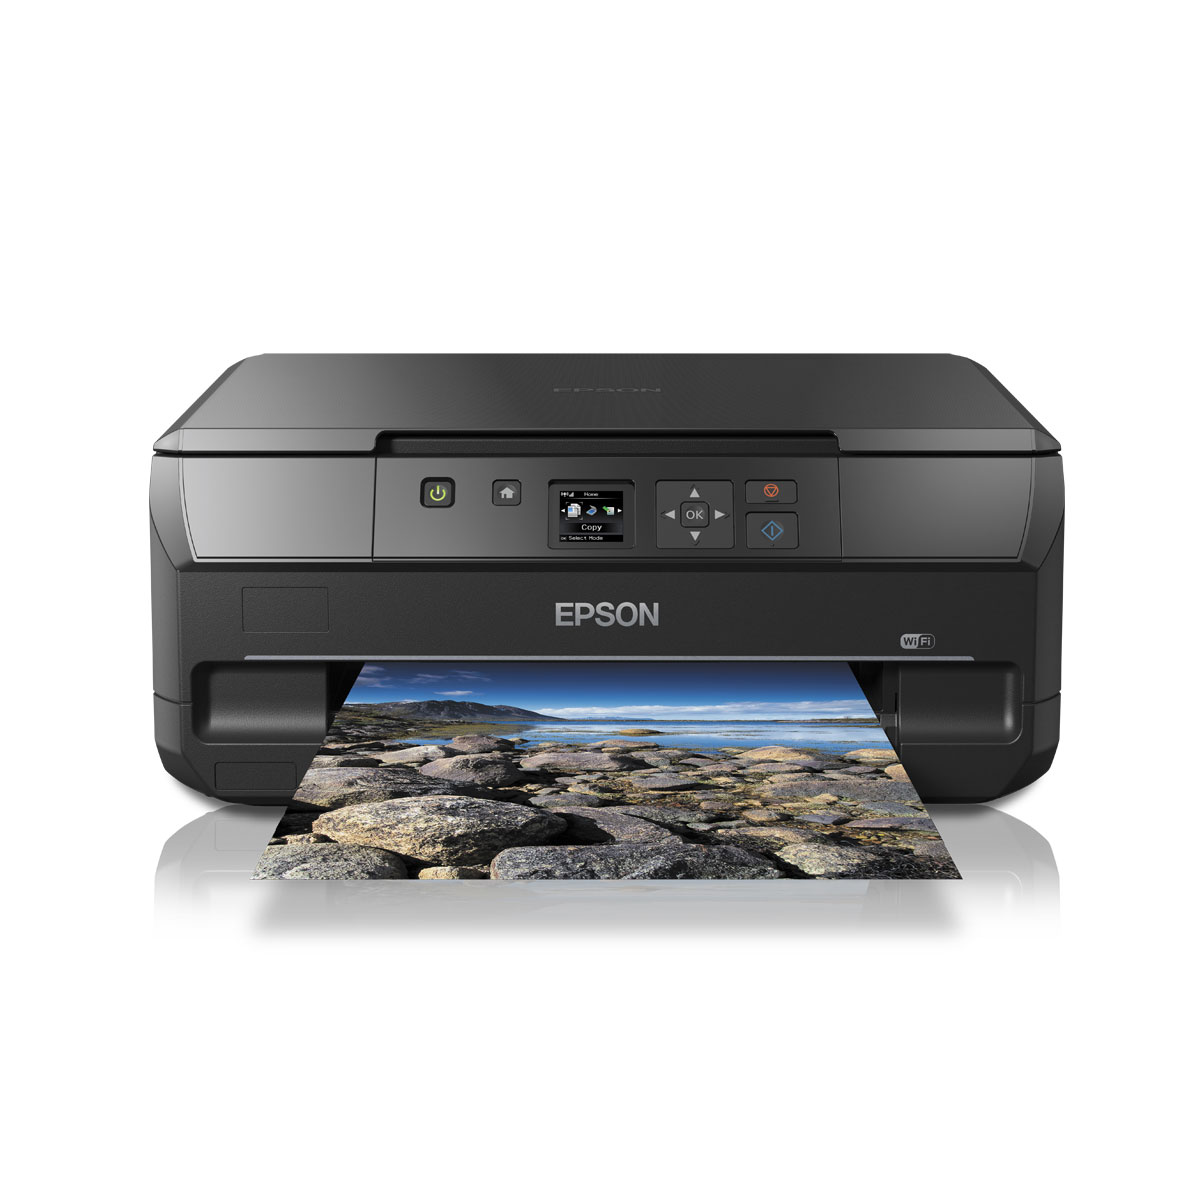 epson expression premium xp 510 imprimante multifonction epson sur. Black Bedroom Furniture Sets. Home Design Ideas